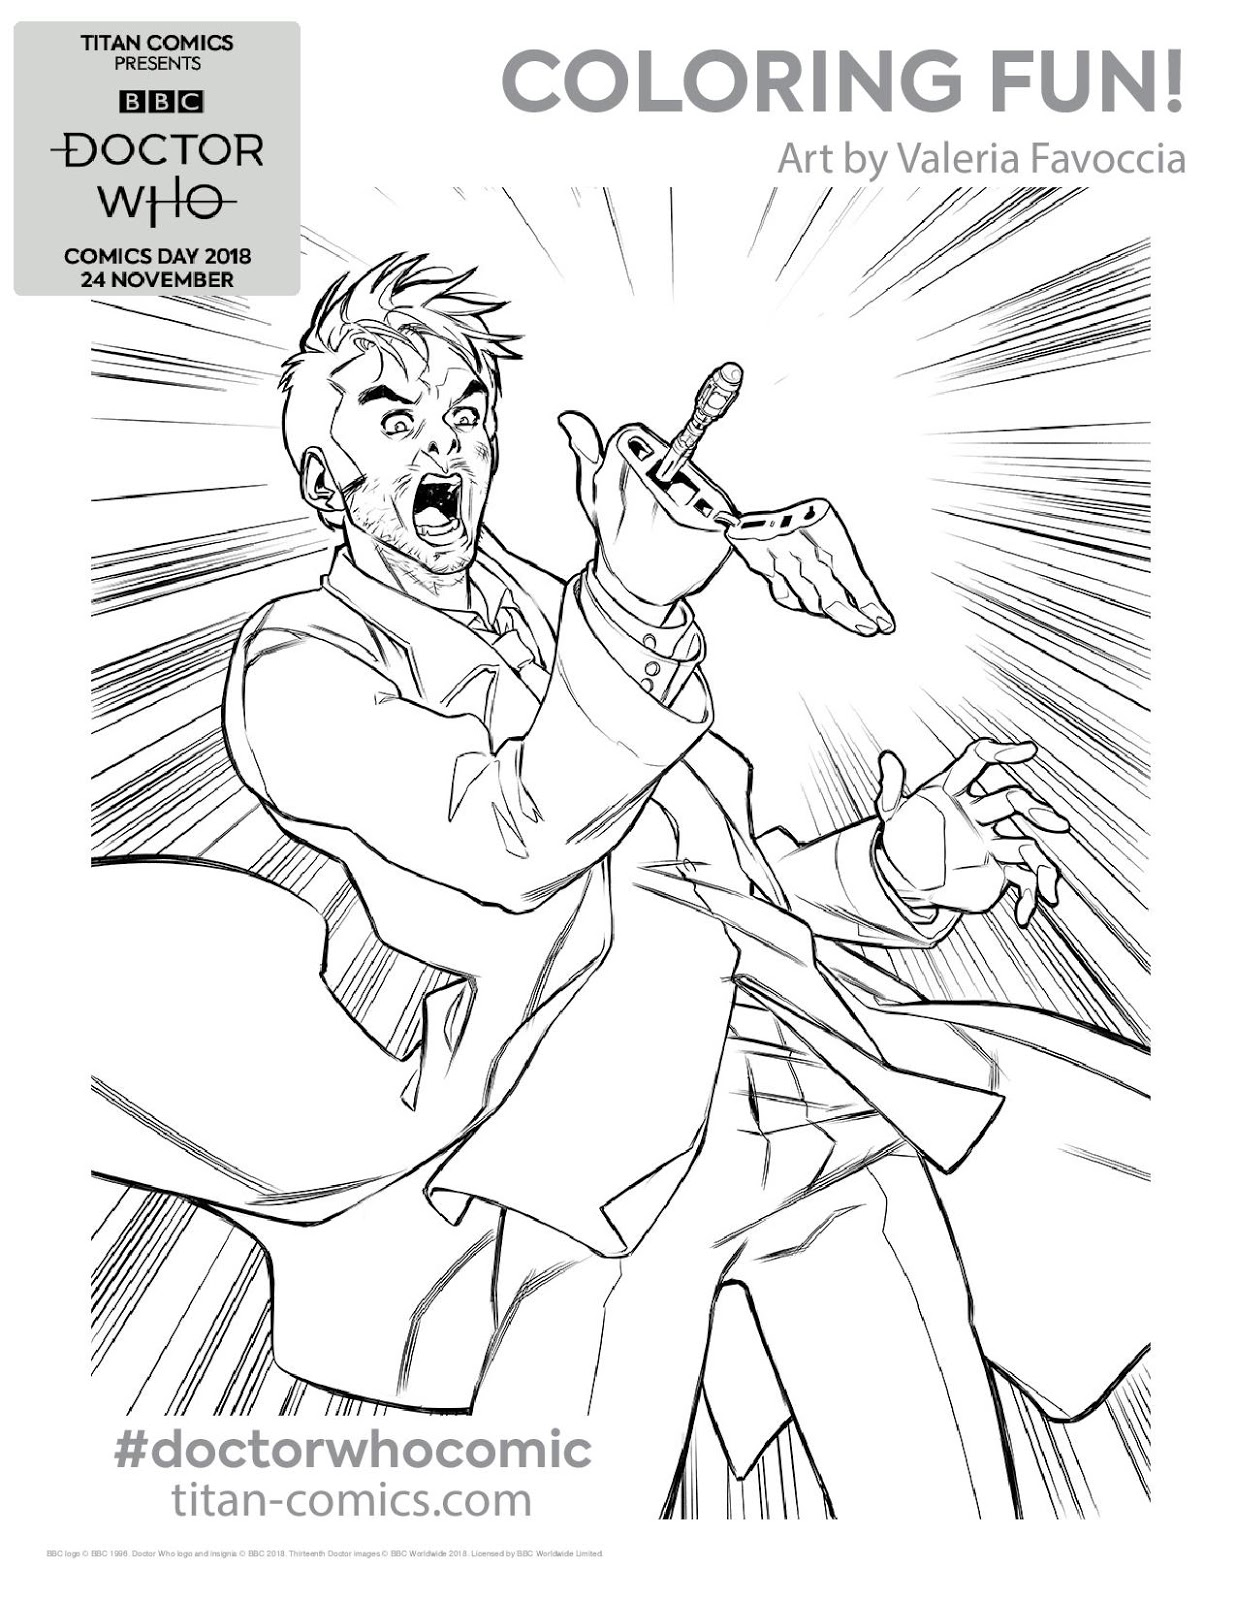 Tardis Coloring Pages Charming Coloring Pages Coloring Pages ... | 1600x1236